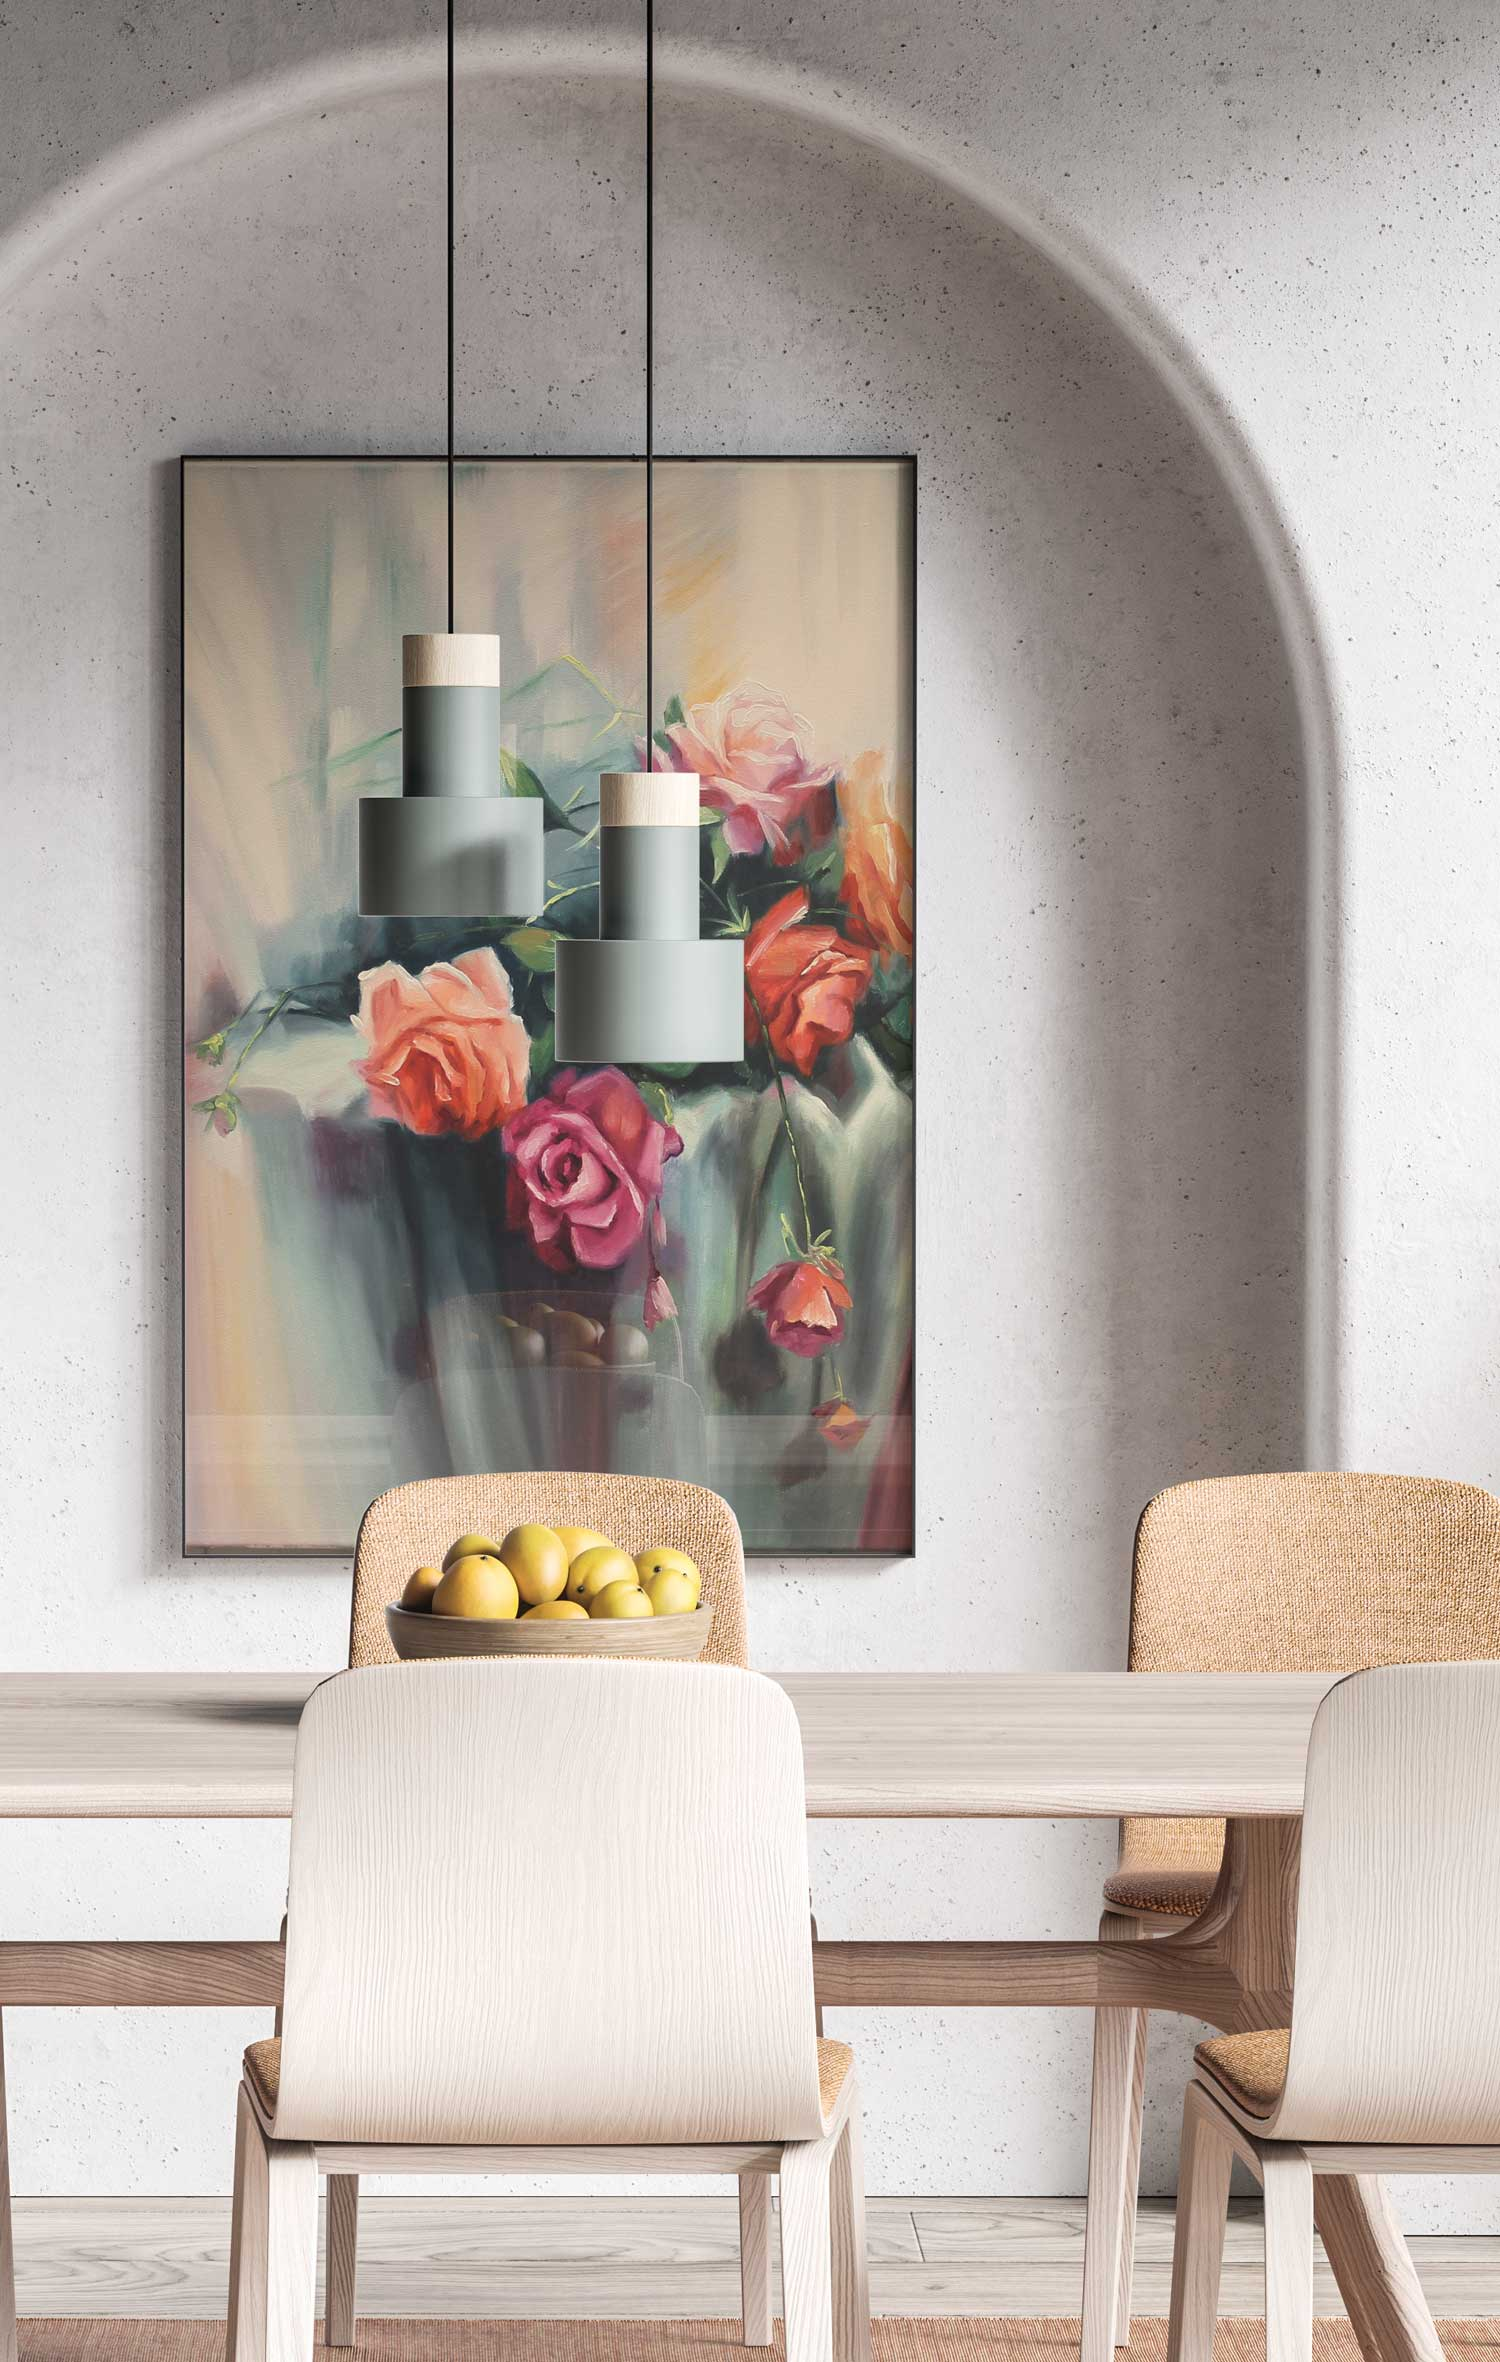 Framed painting of flowers hanging in dining room.